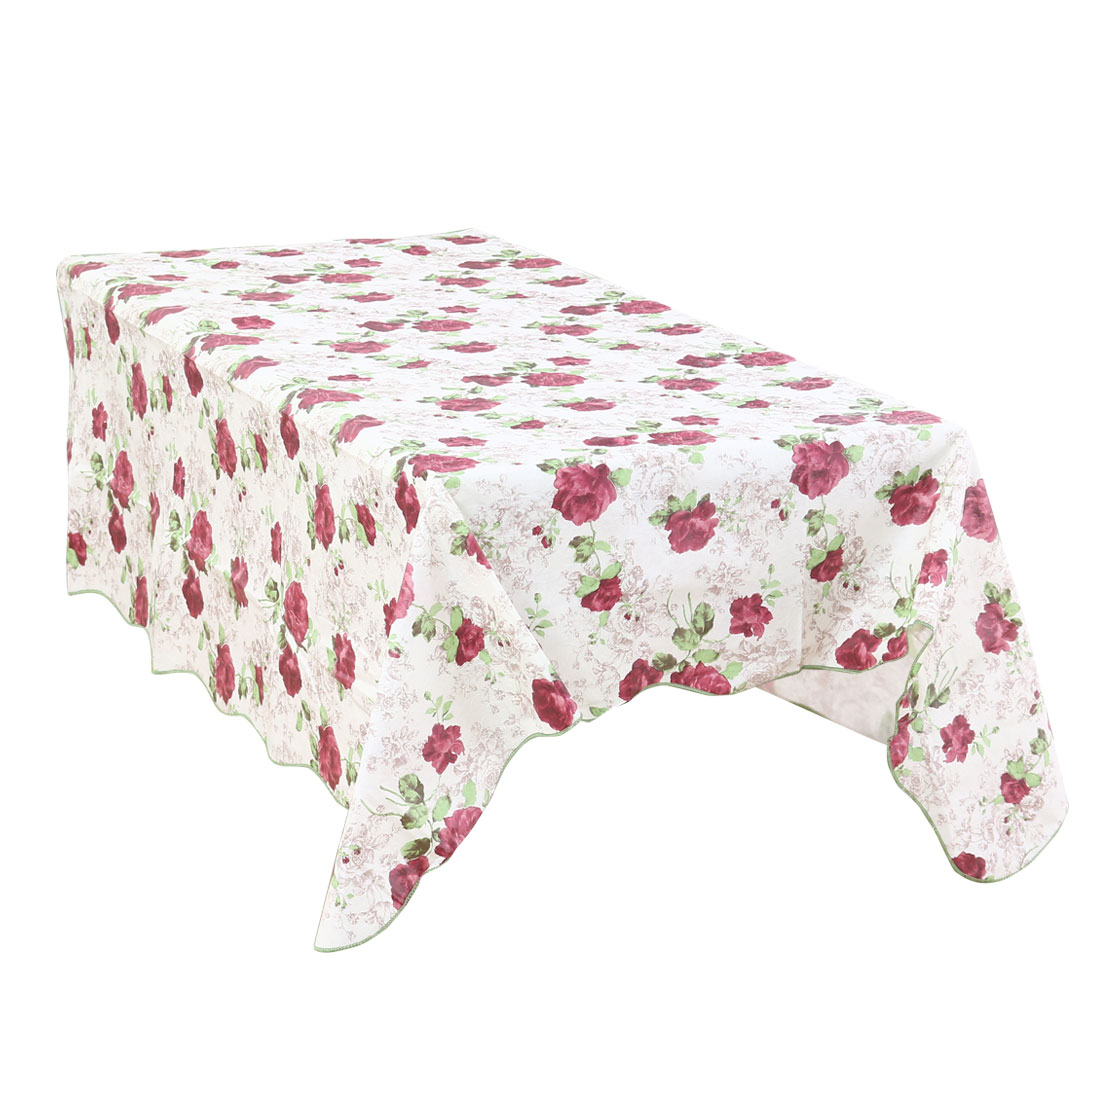 Home Picnics Peony Pattern Water Resistant Oil-proof Tablecloth Table Cloth Cover 60 x 60 Inch